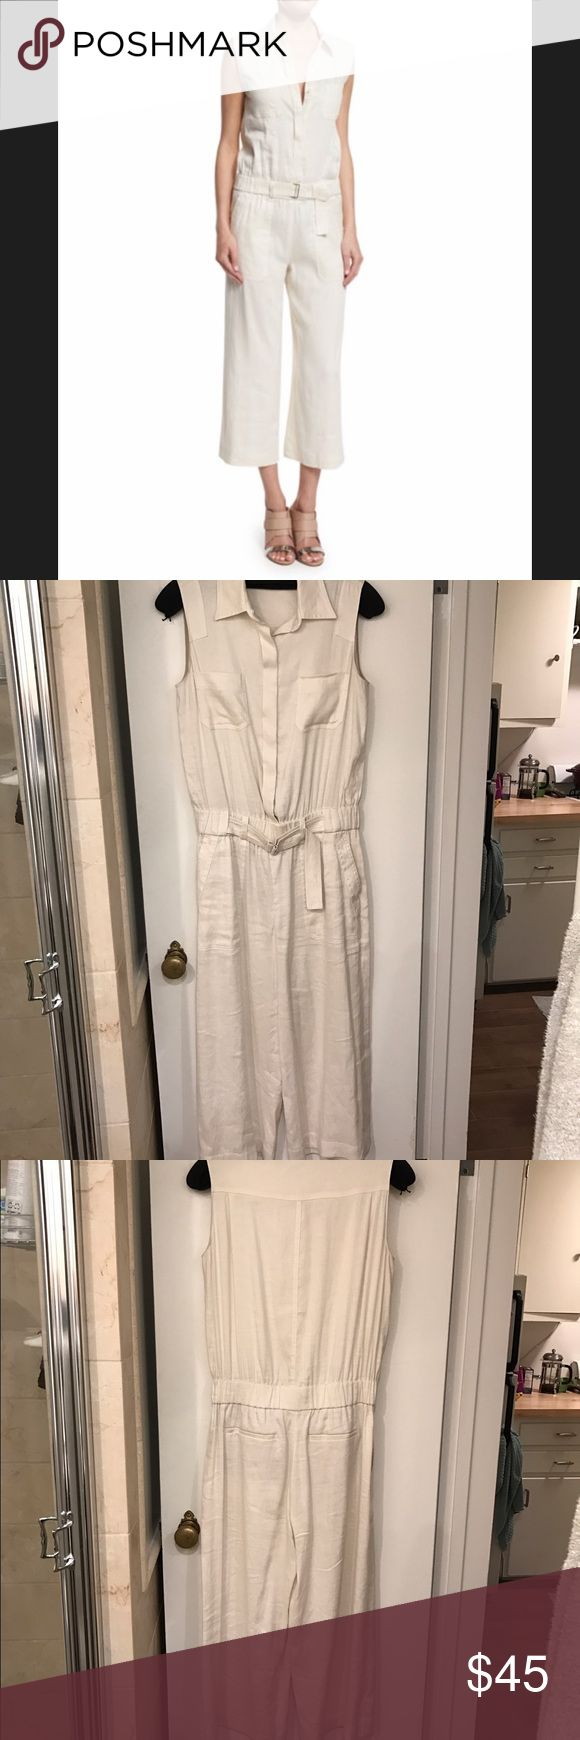 Vince Jumpsuit Fun linen jumpsuit for summer! Sleeveless, belted elastic waistband, and cropped wide leg. Looks adorable on, but hard to tell from the hanger so I added a picture form online. Like new!! Vince Pants Jumpsuits & Rompers